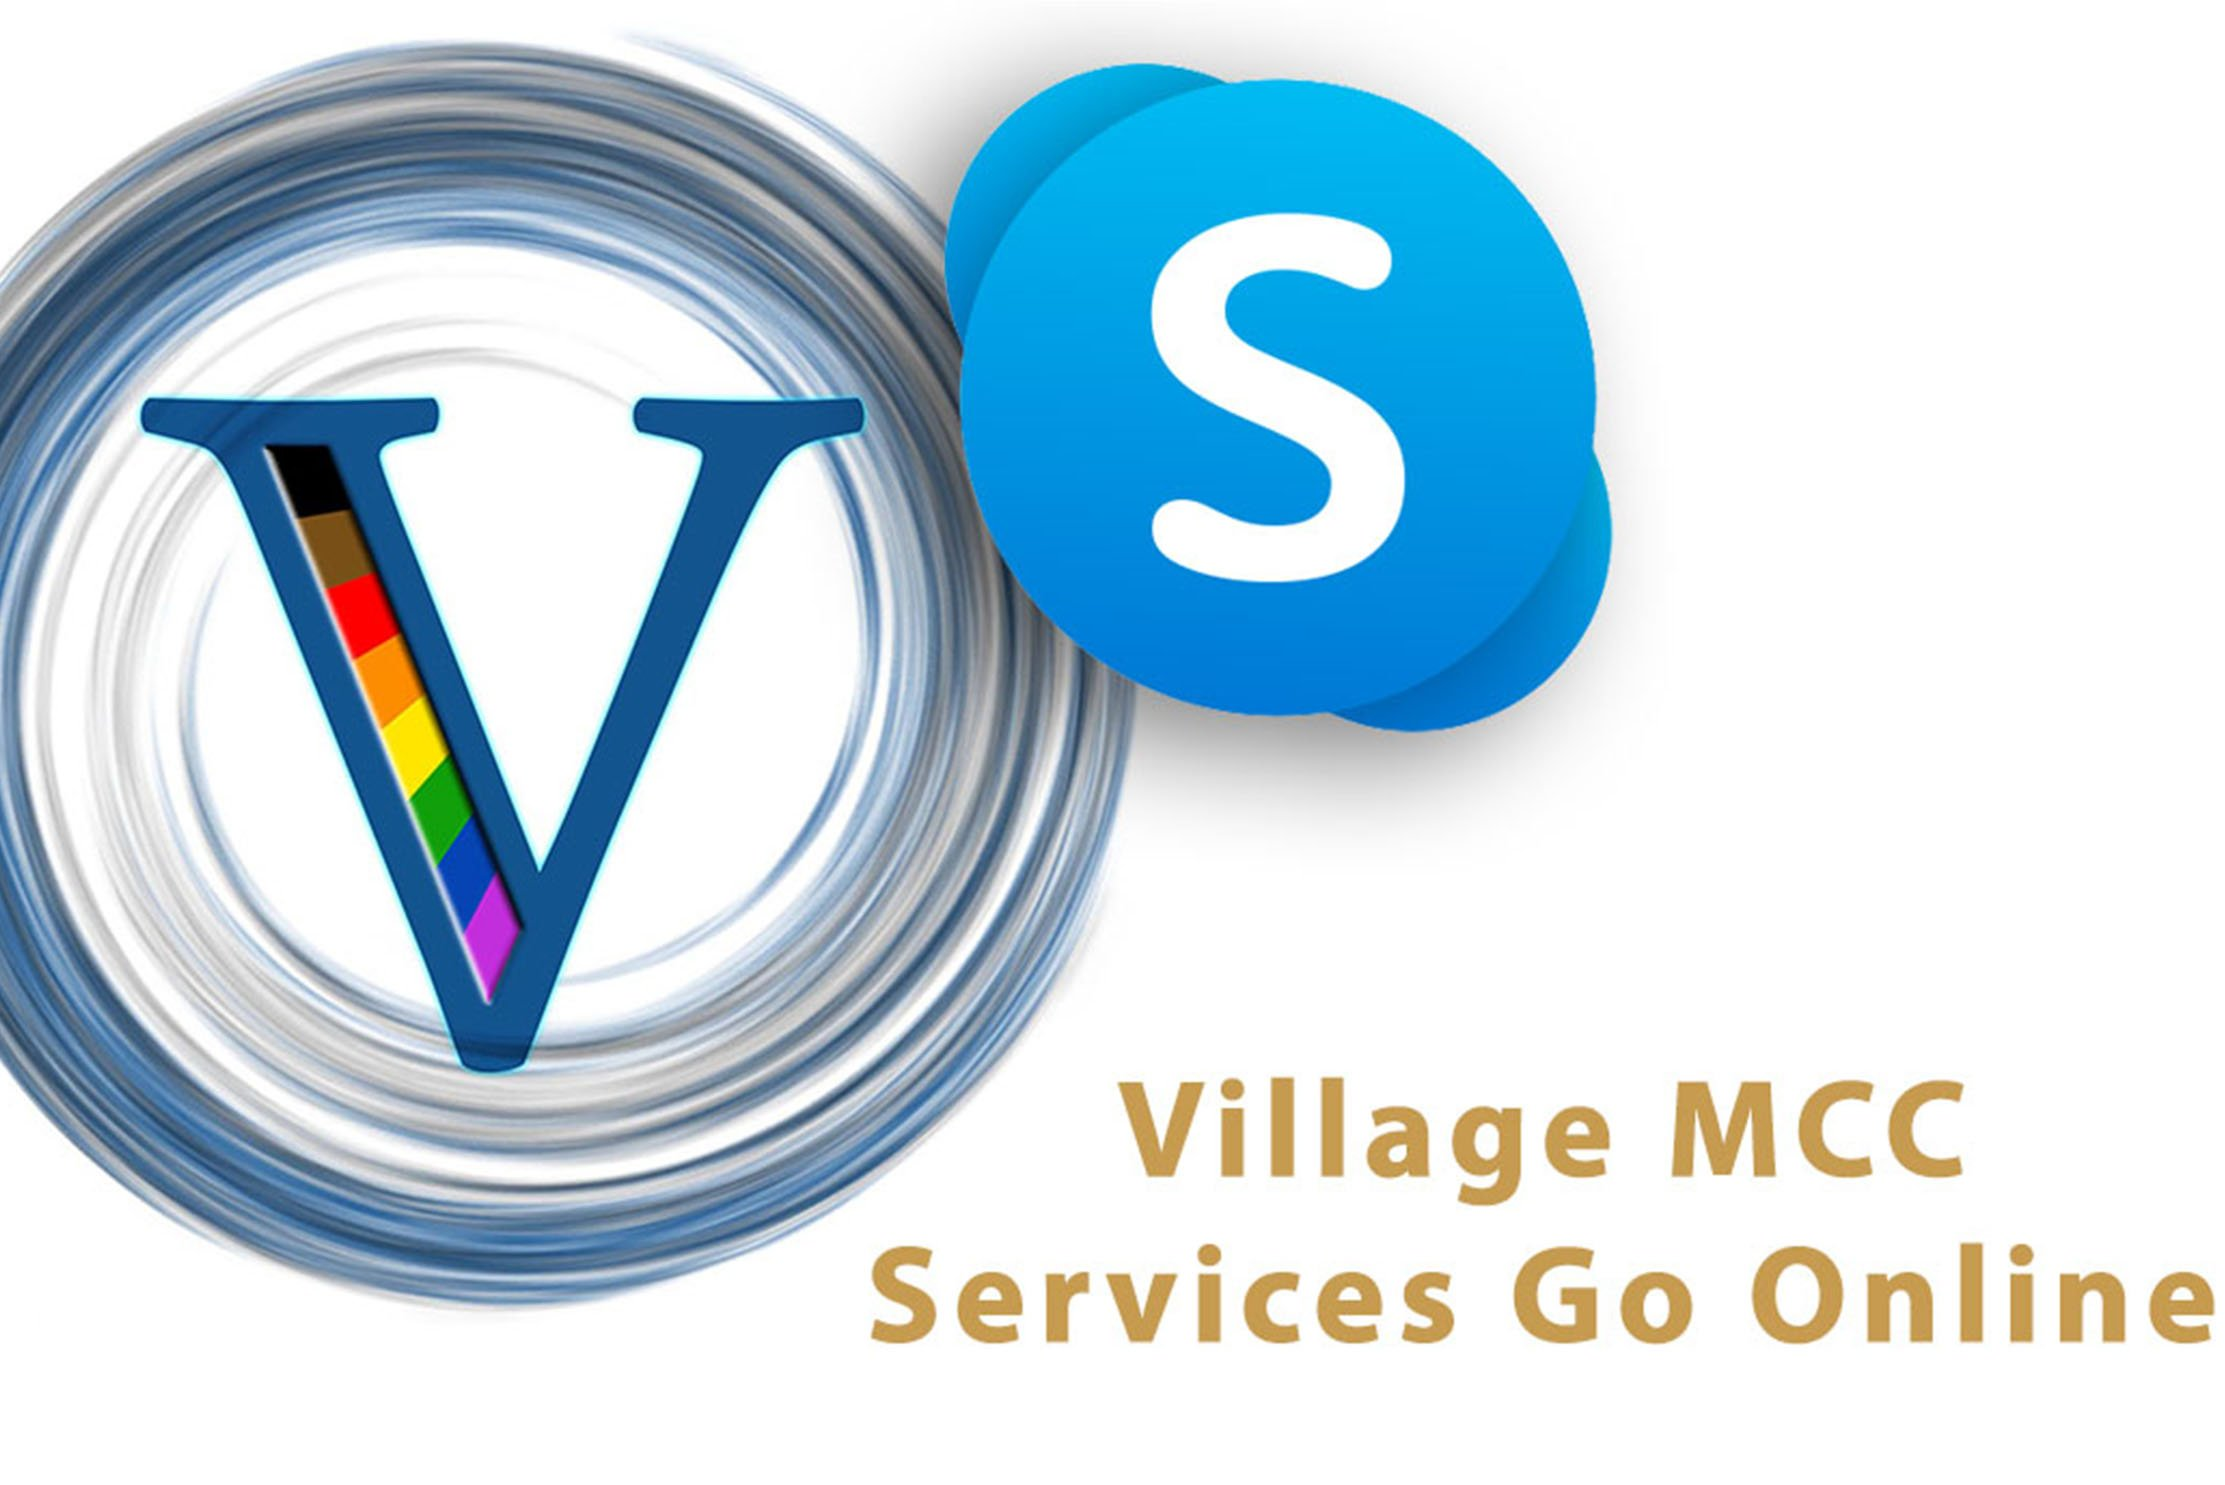 In response to the Covid-19 outbreak, services at Brighton's The Village MCC will now be held via Skype every Sunday at 6pm